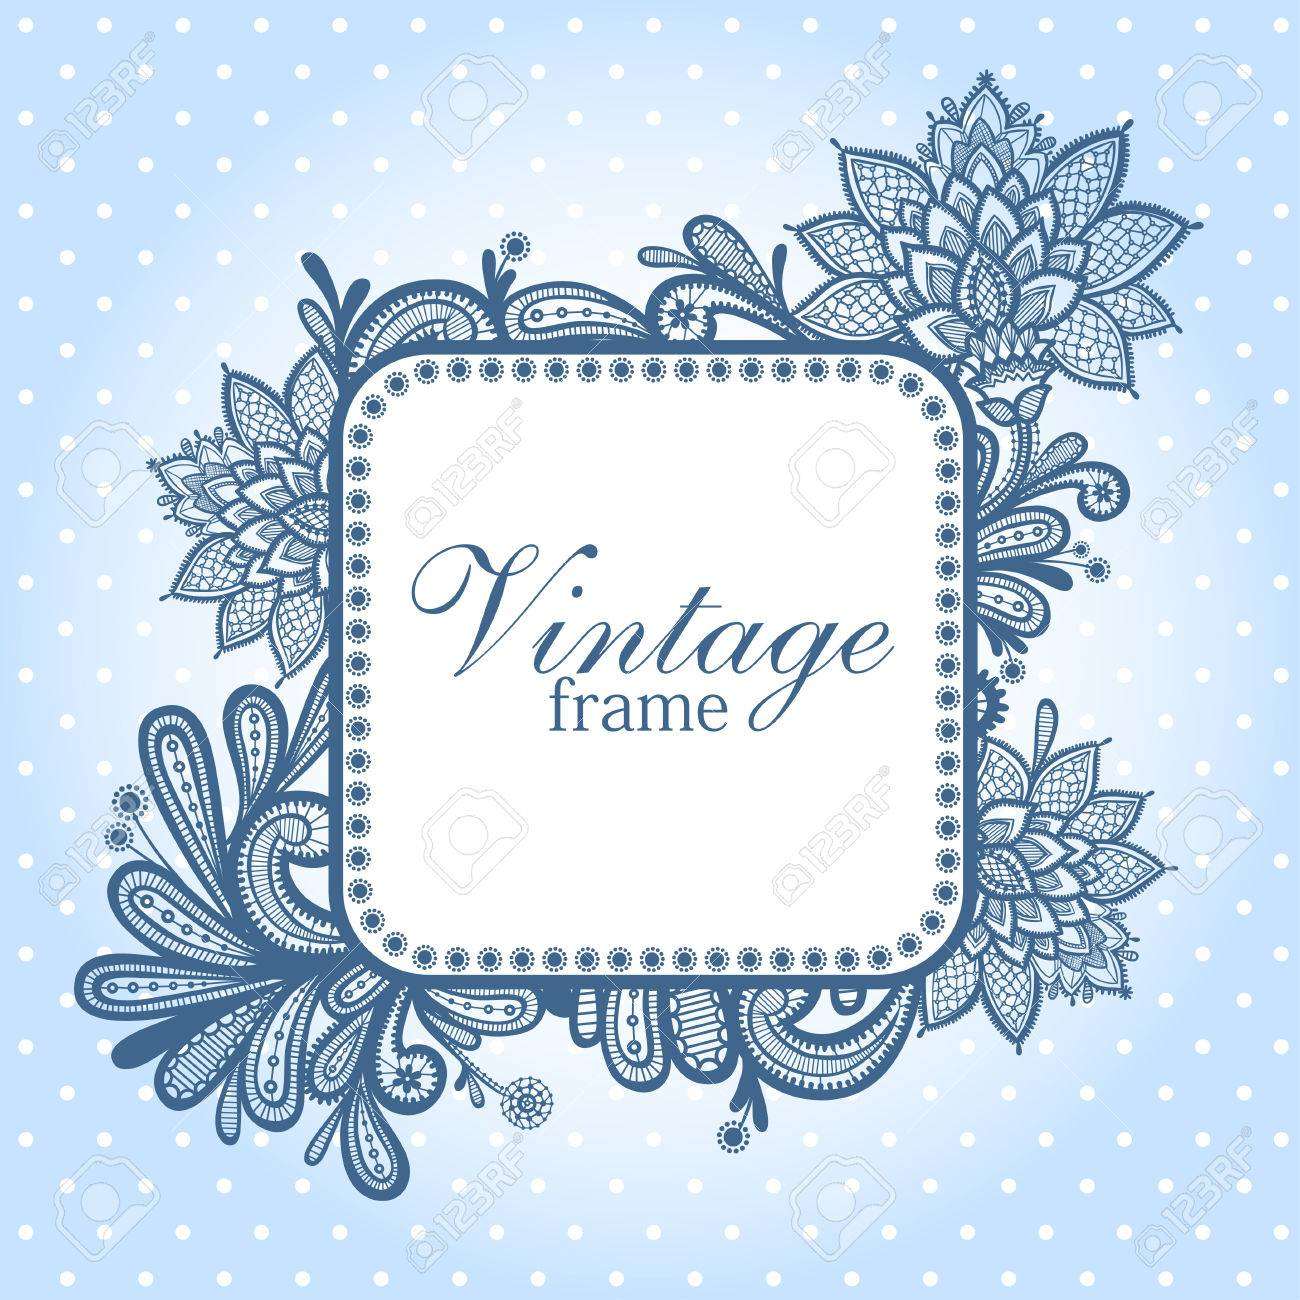 Wedding Design With Lace In Retro Style. Royalty Free Cliparts ... 6dc7c8de2